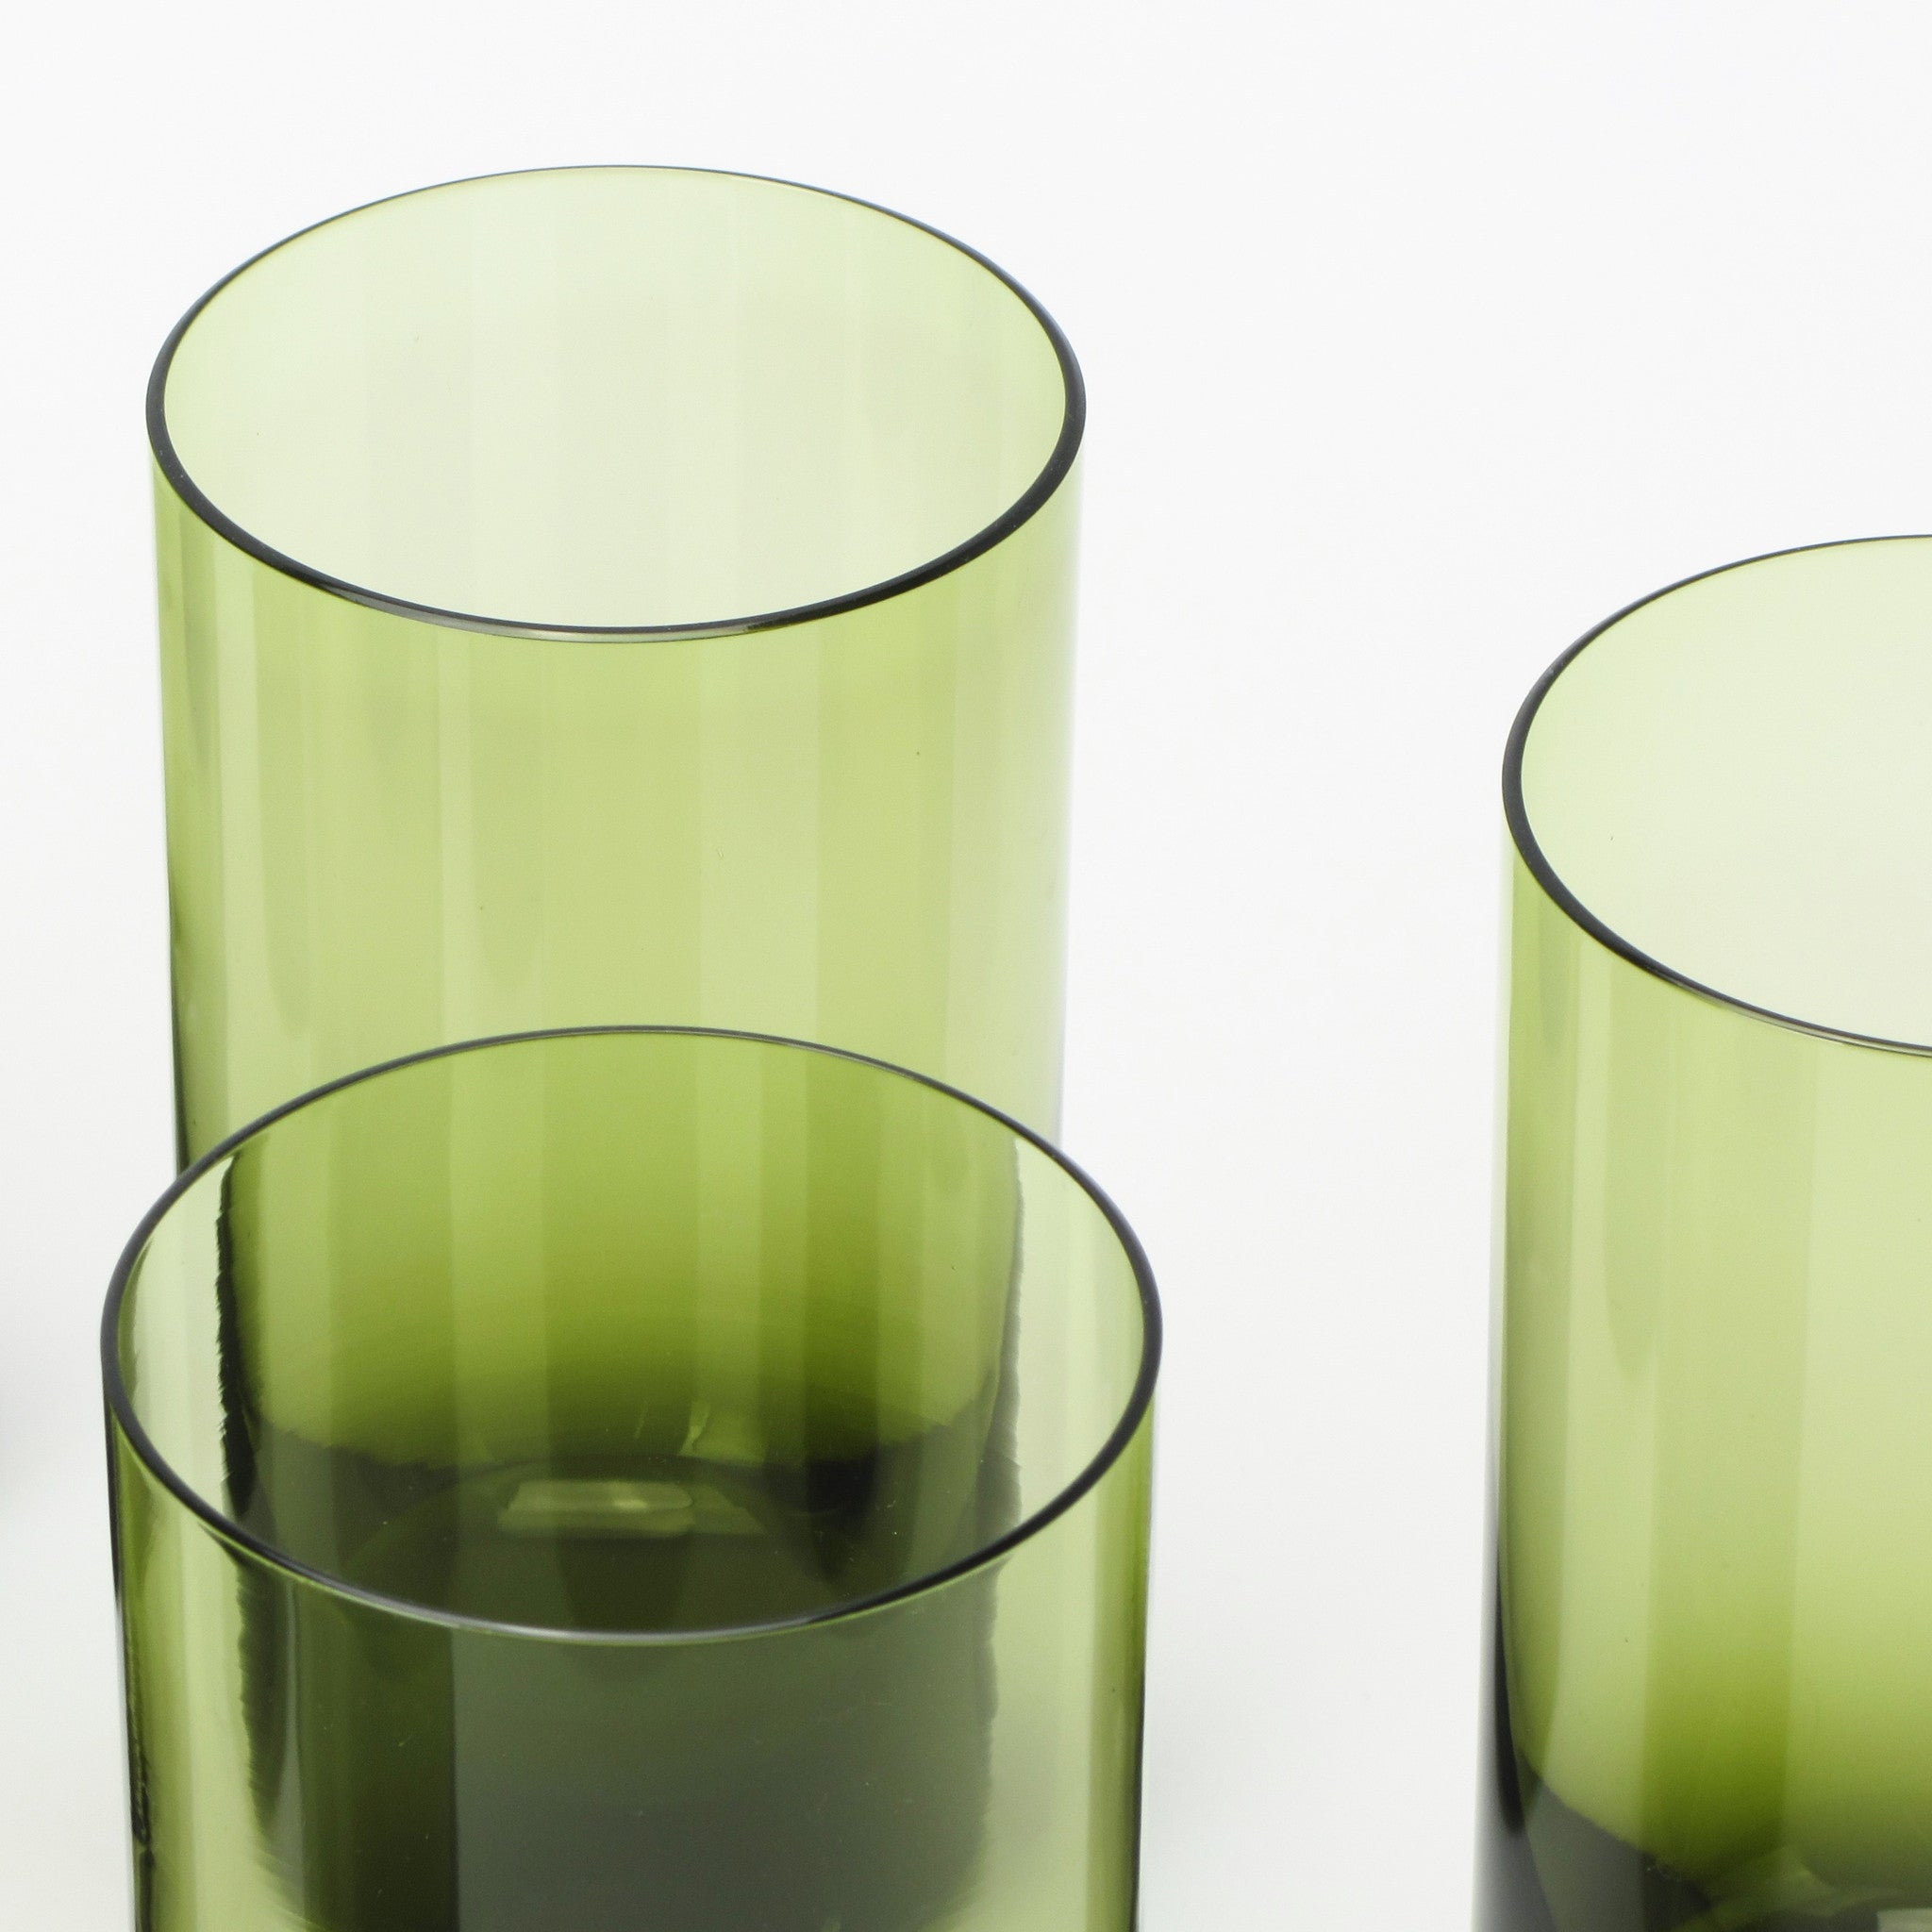 sasaki green crystal highball glasses made in japan closeup view - Highball Glasses